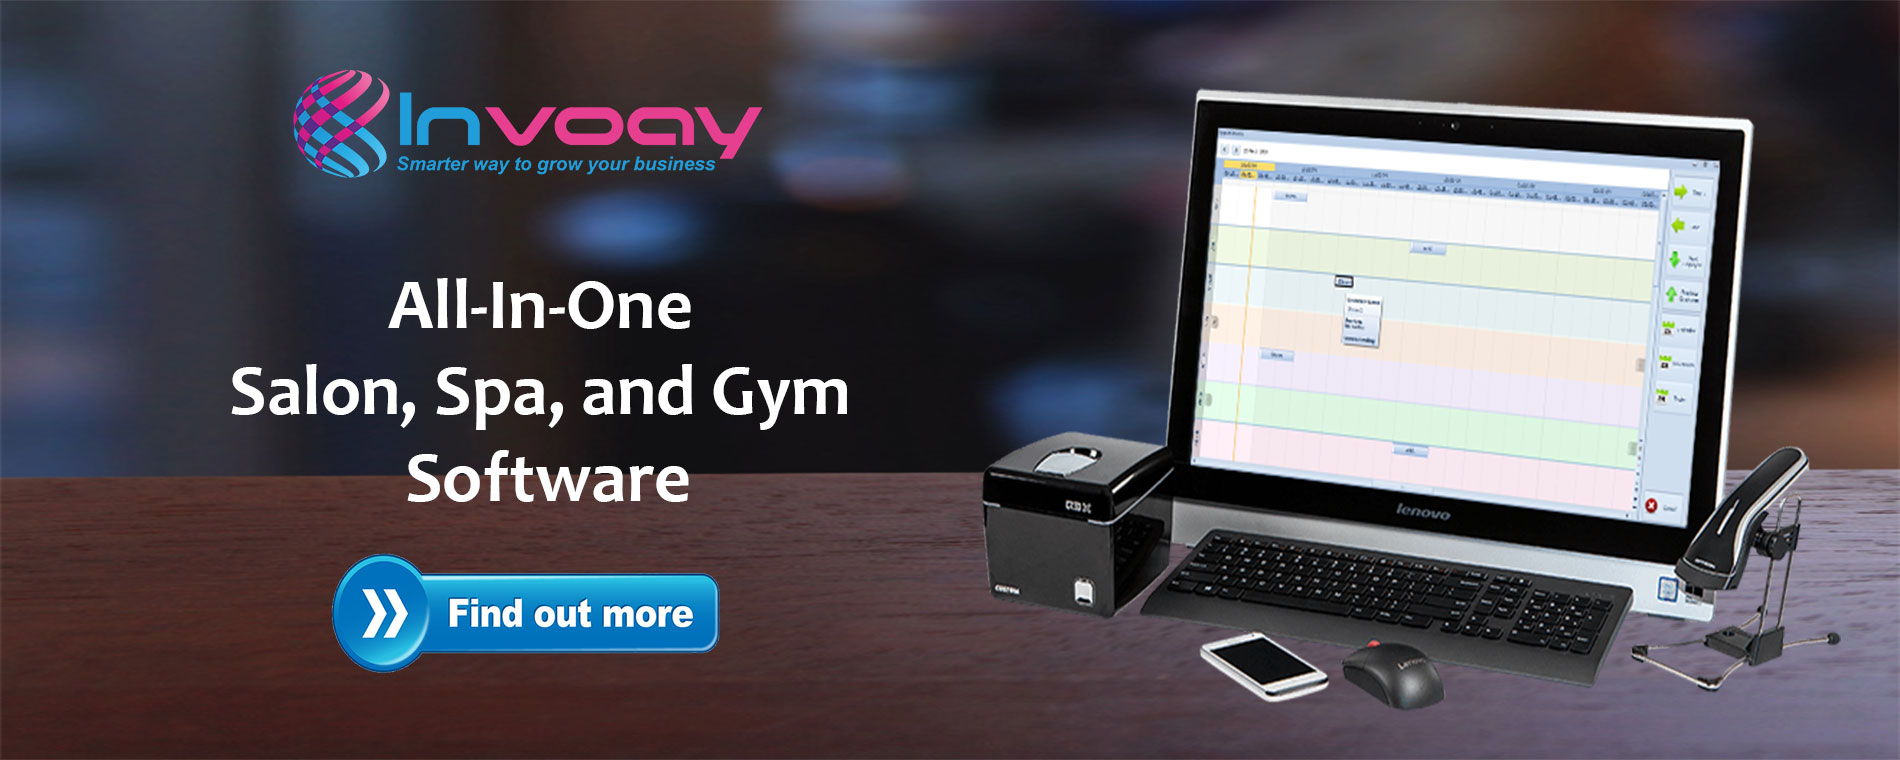 Invoay Software